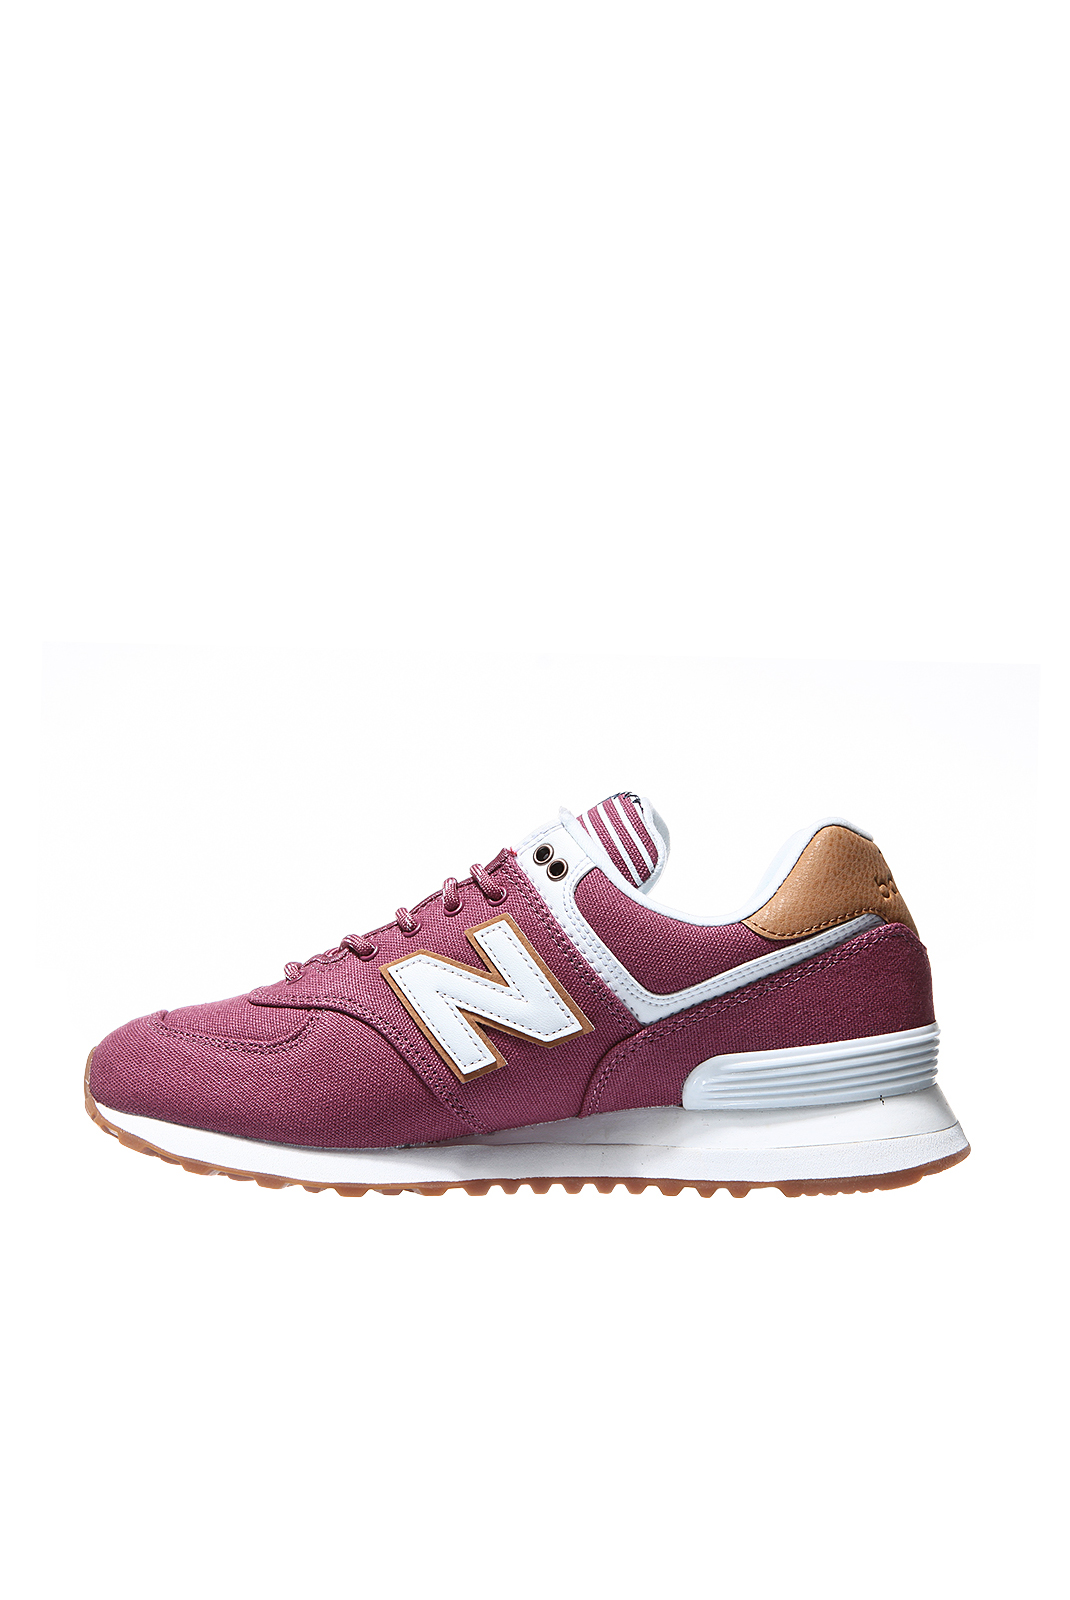 Chaussures  New balance WL574SYF BORDEAUX